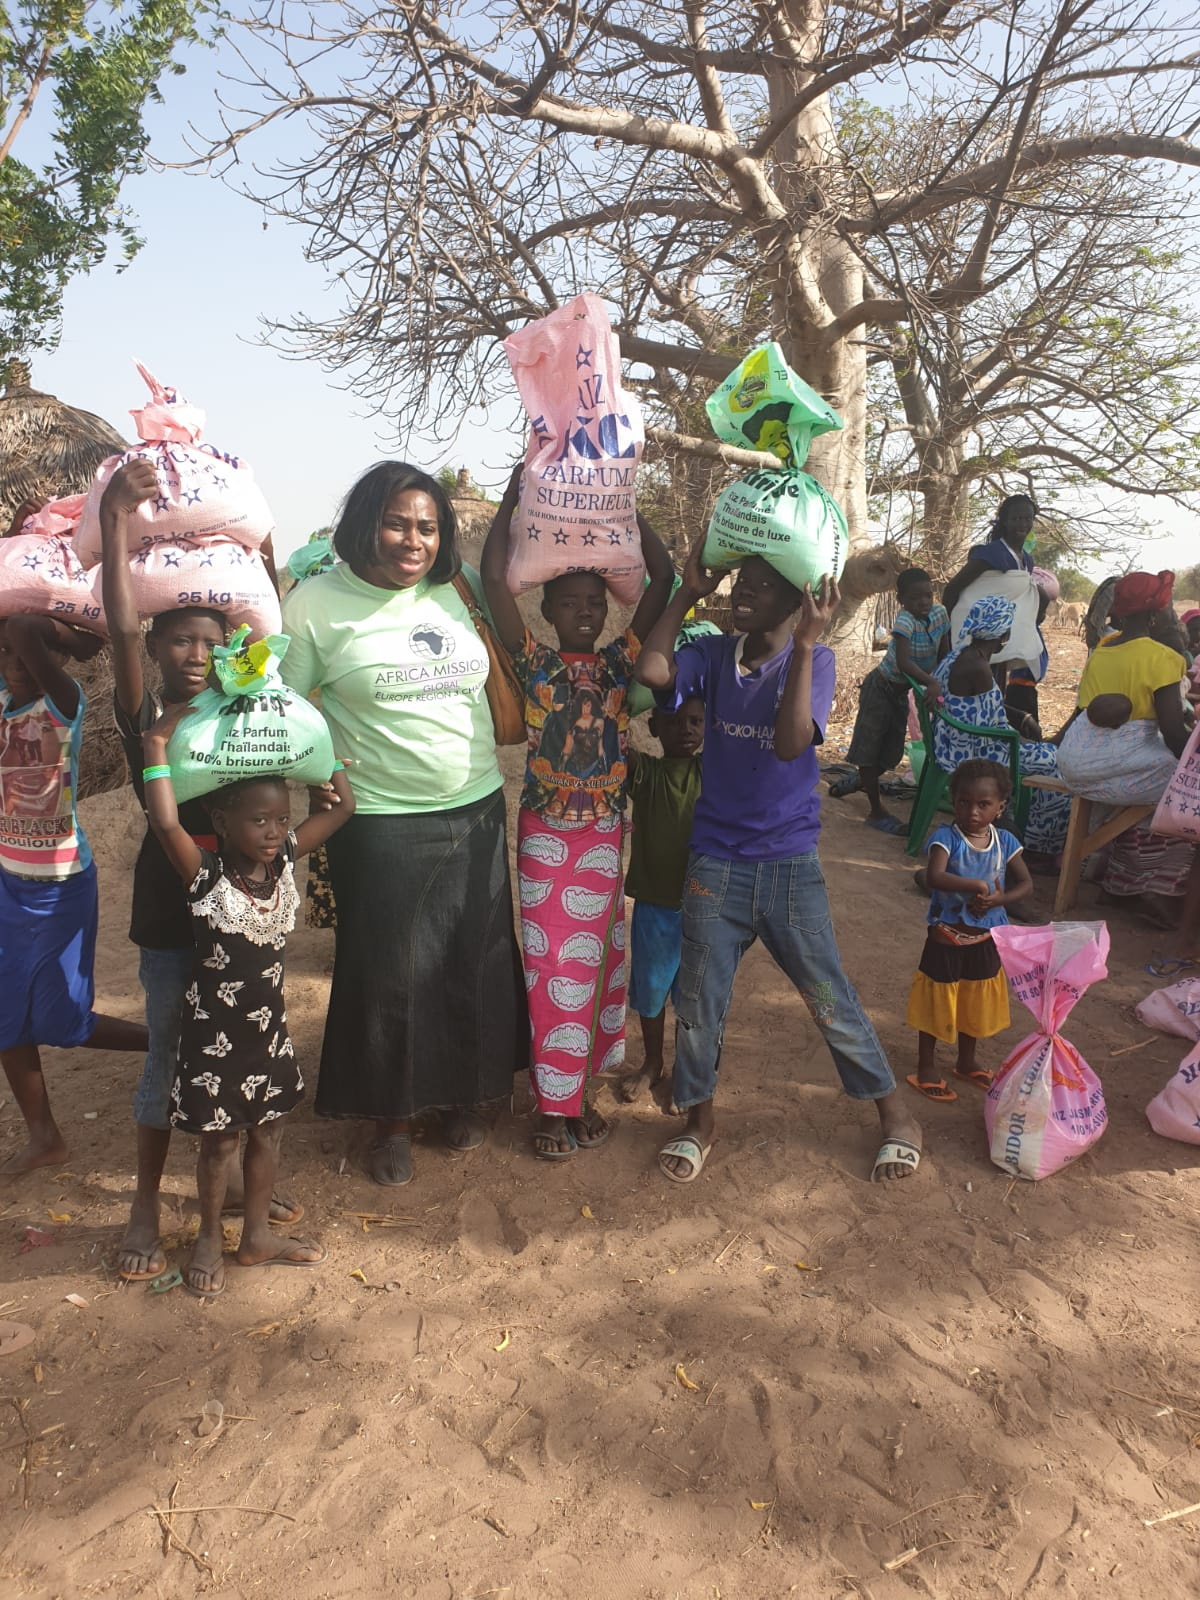 DWC donates to support the work of Africa Missions in Senegal